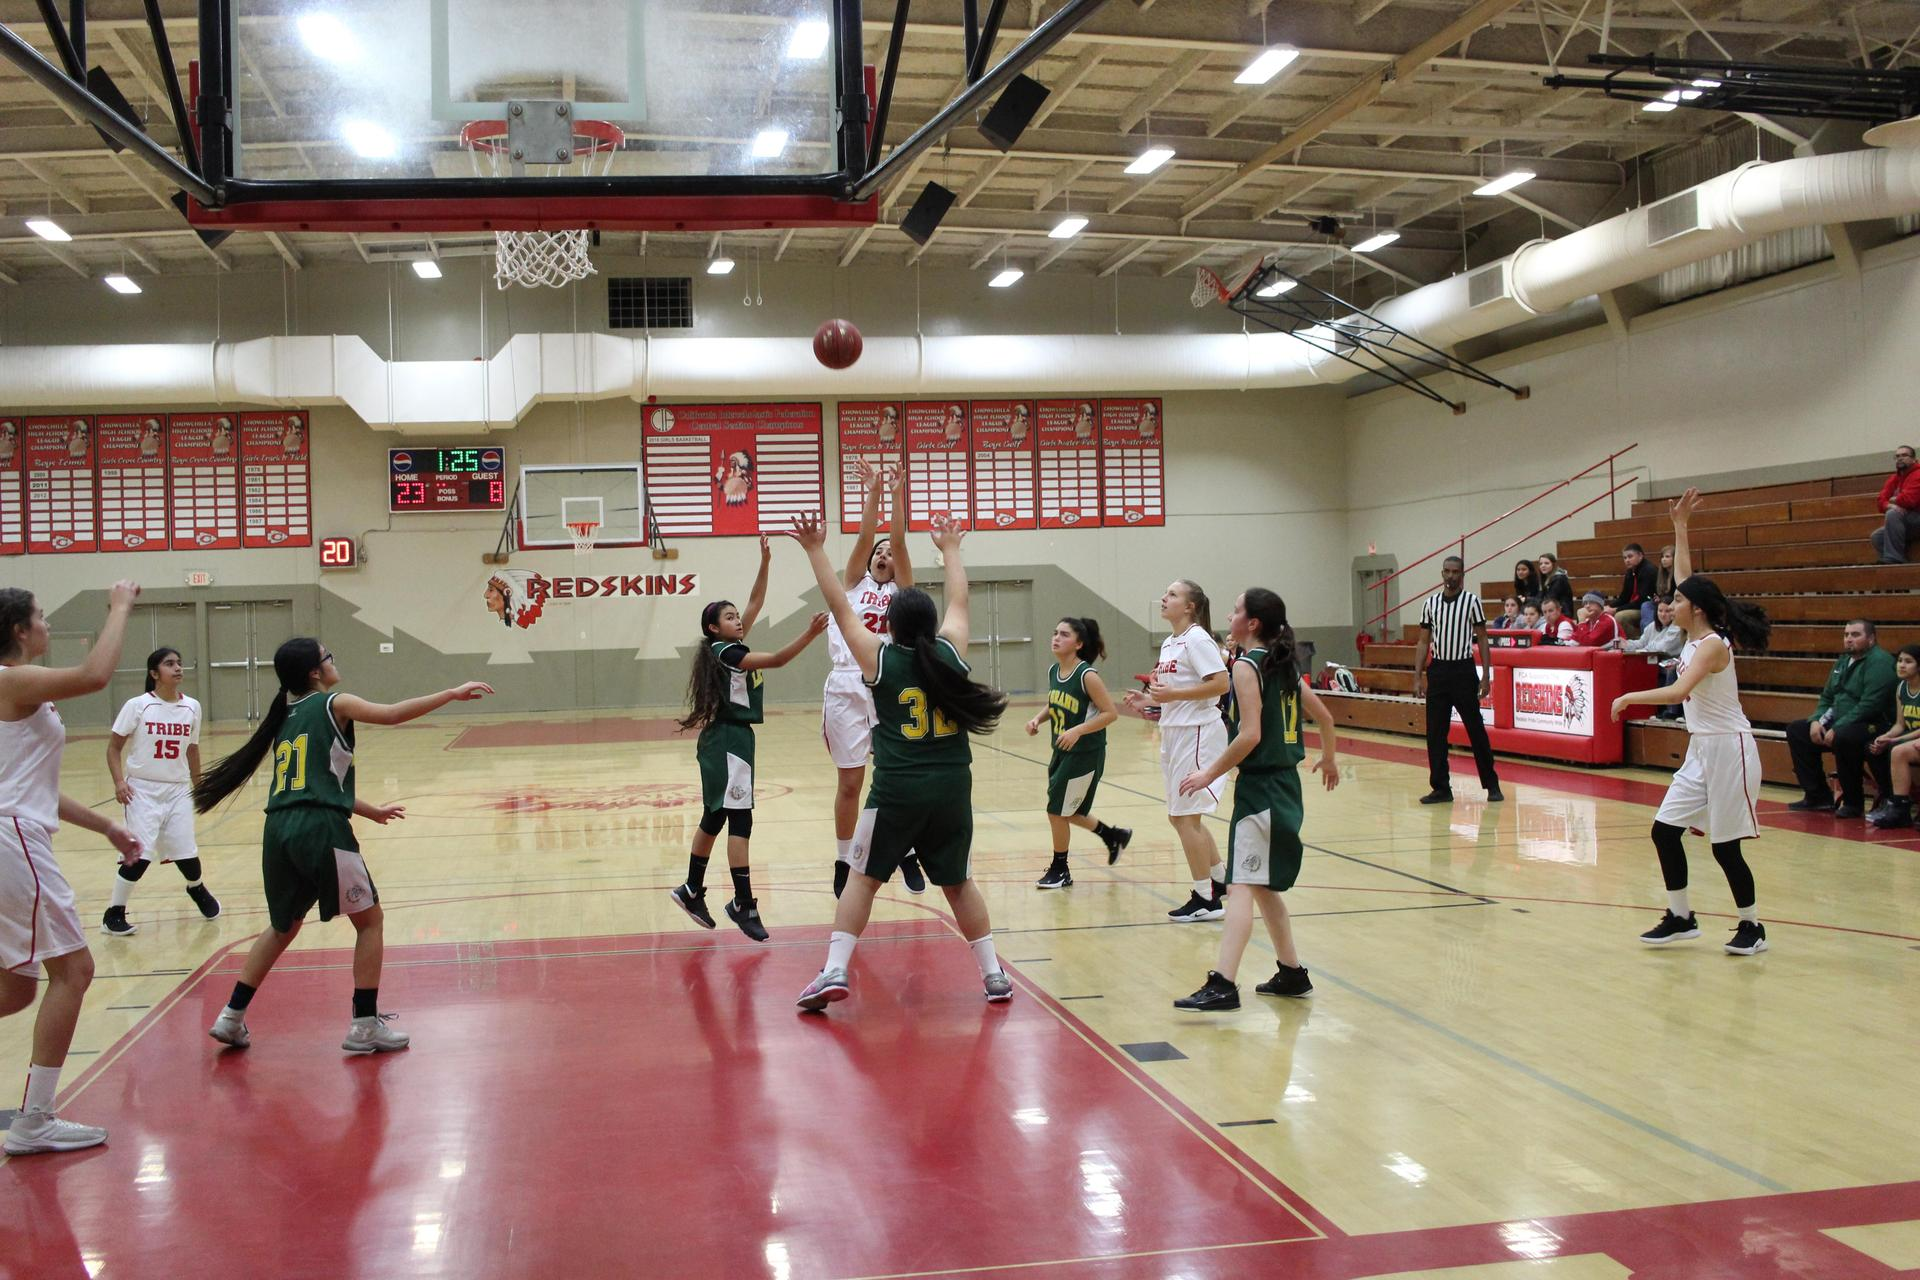 Junior varsity girls playing basketball against Le Grand